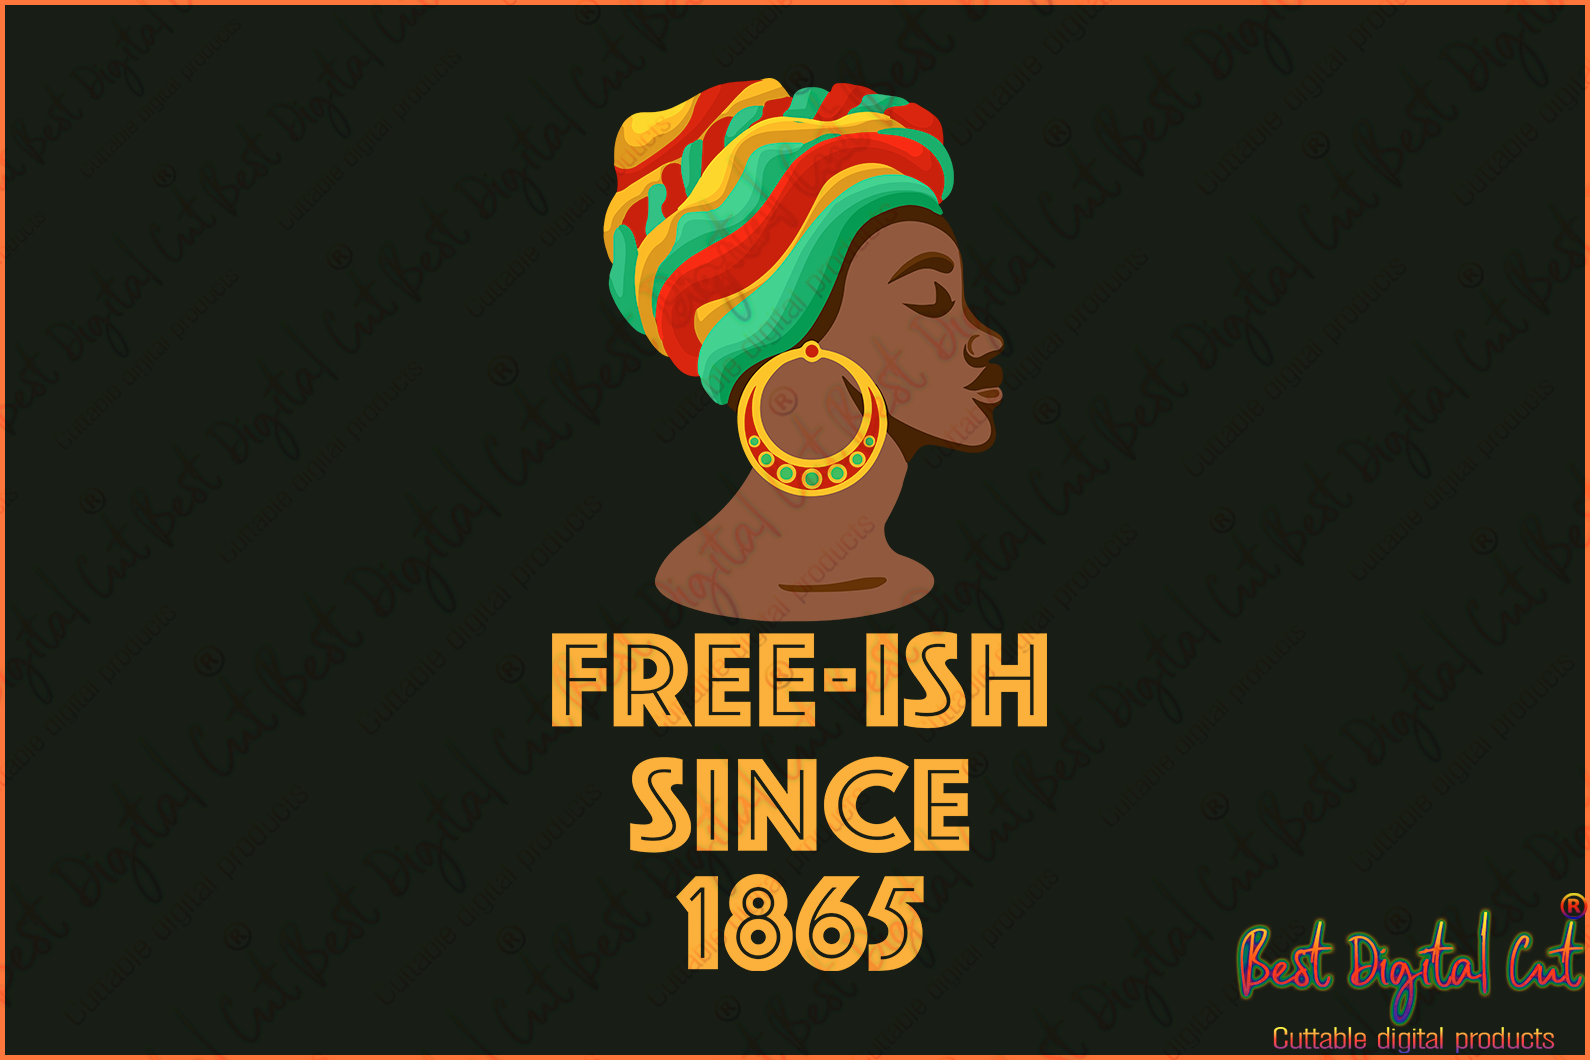 Free-ish since 1865 juneteenth svg,freedom day svg,June 19th svg,emancipation day svg,1776 July 4th,independence day svg,black African hands,American pride gift,black lives matter shirt,black history month,silhouette svg